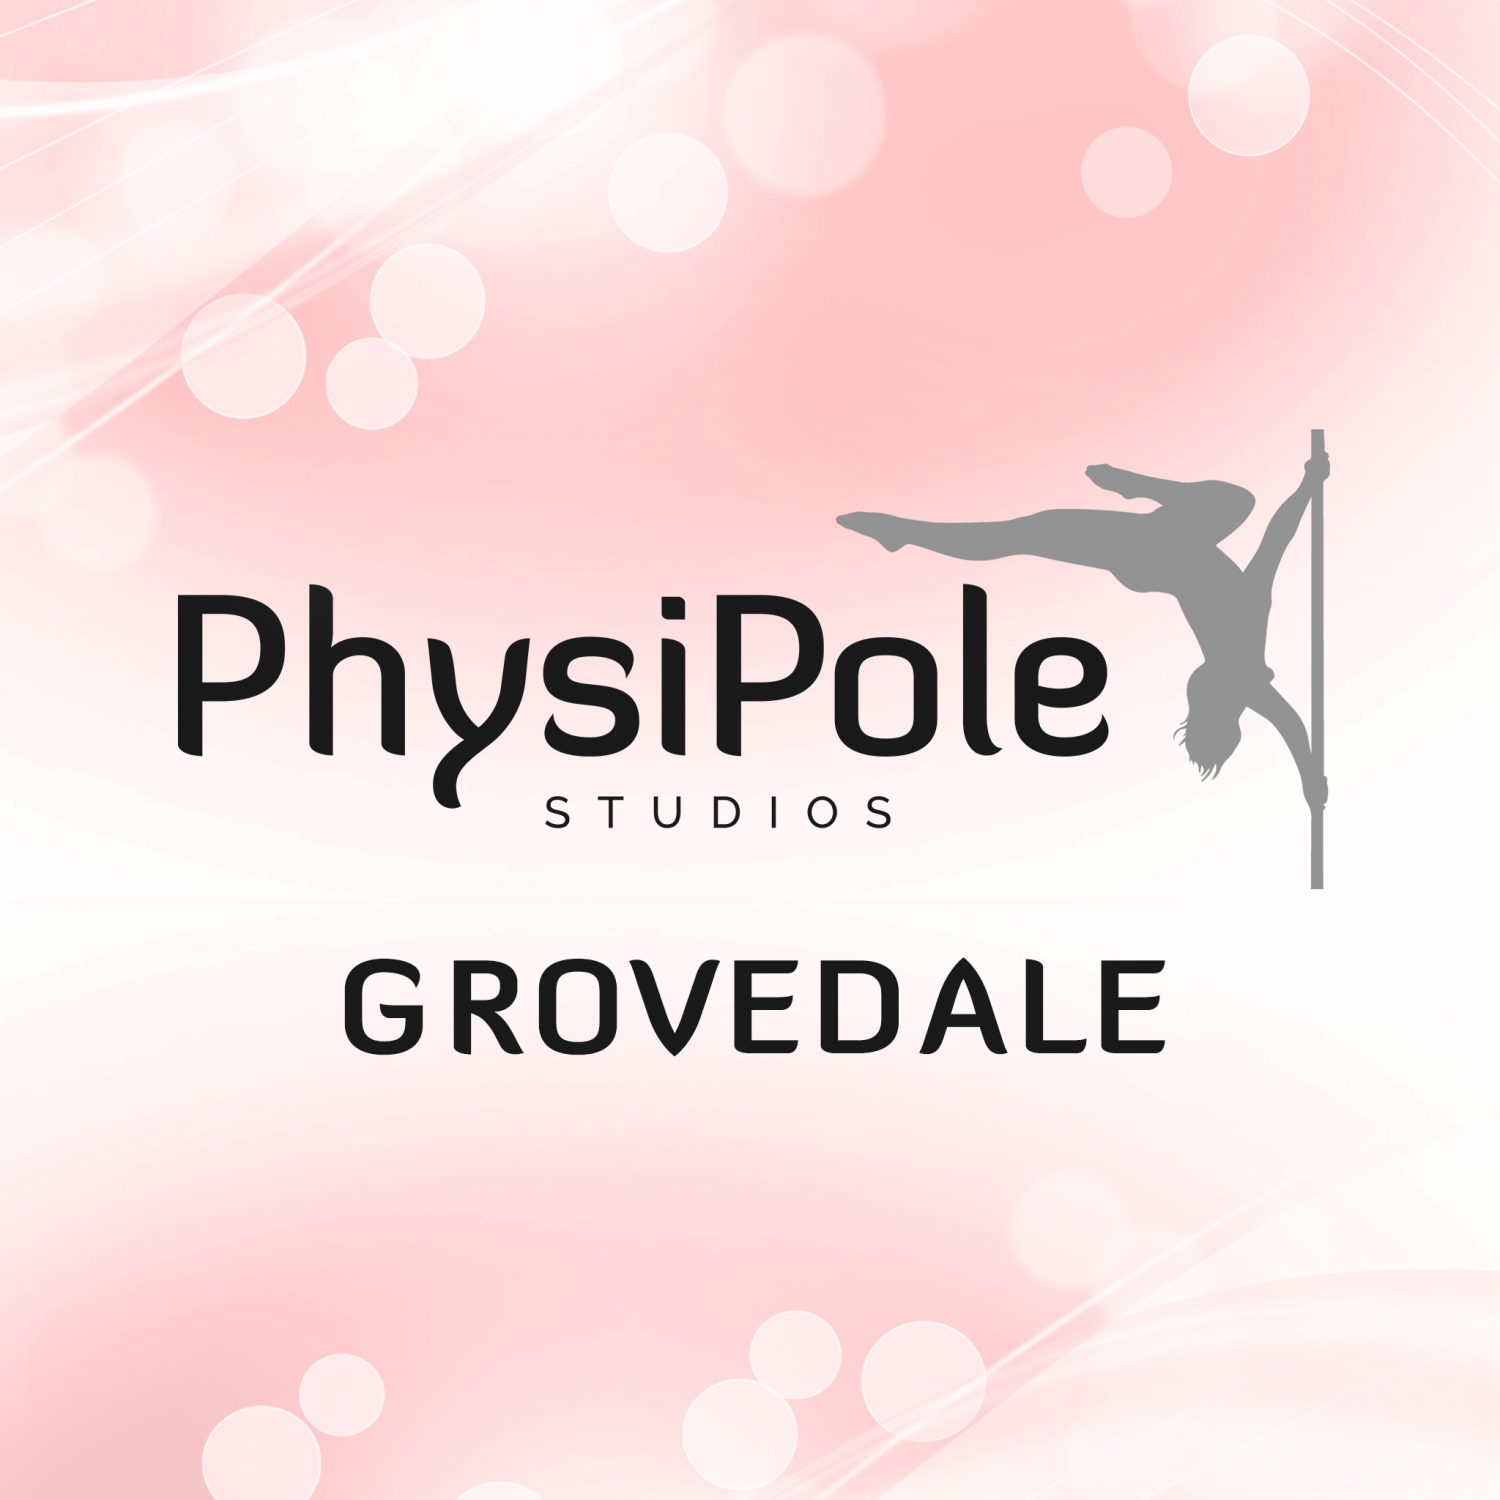 PhysiPole Studios Grovedale